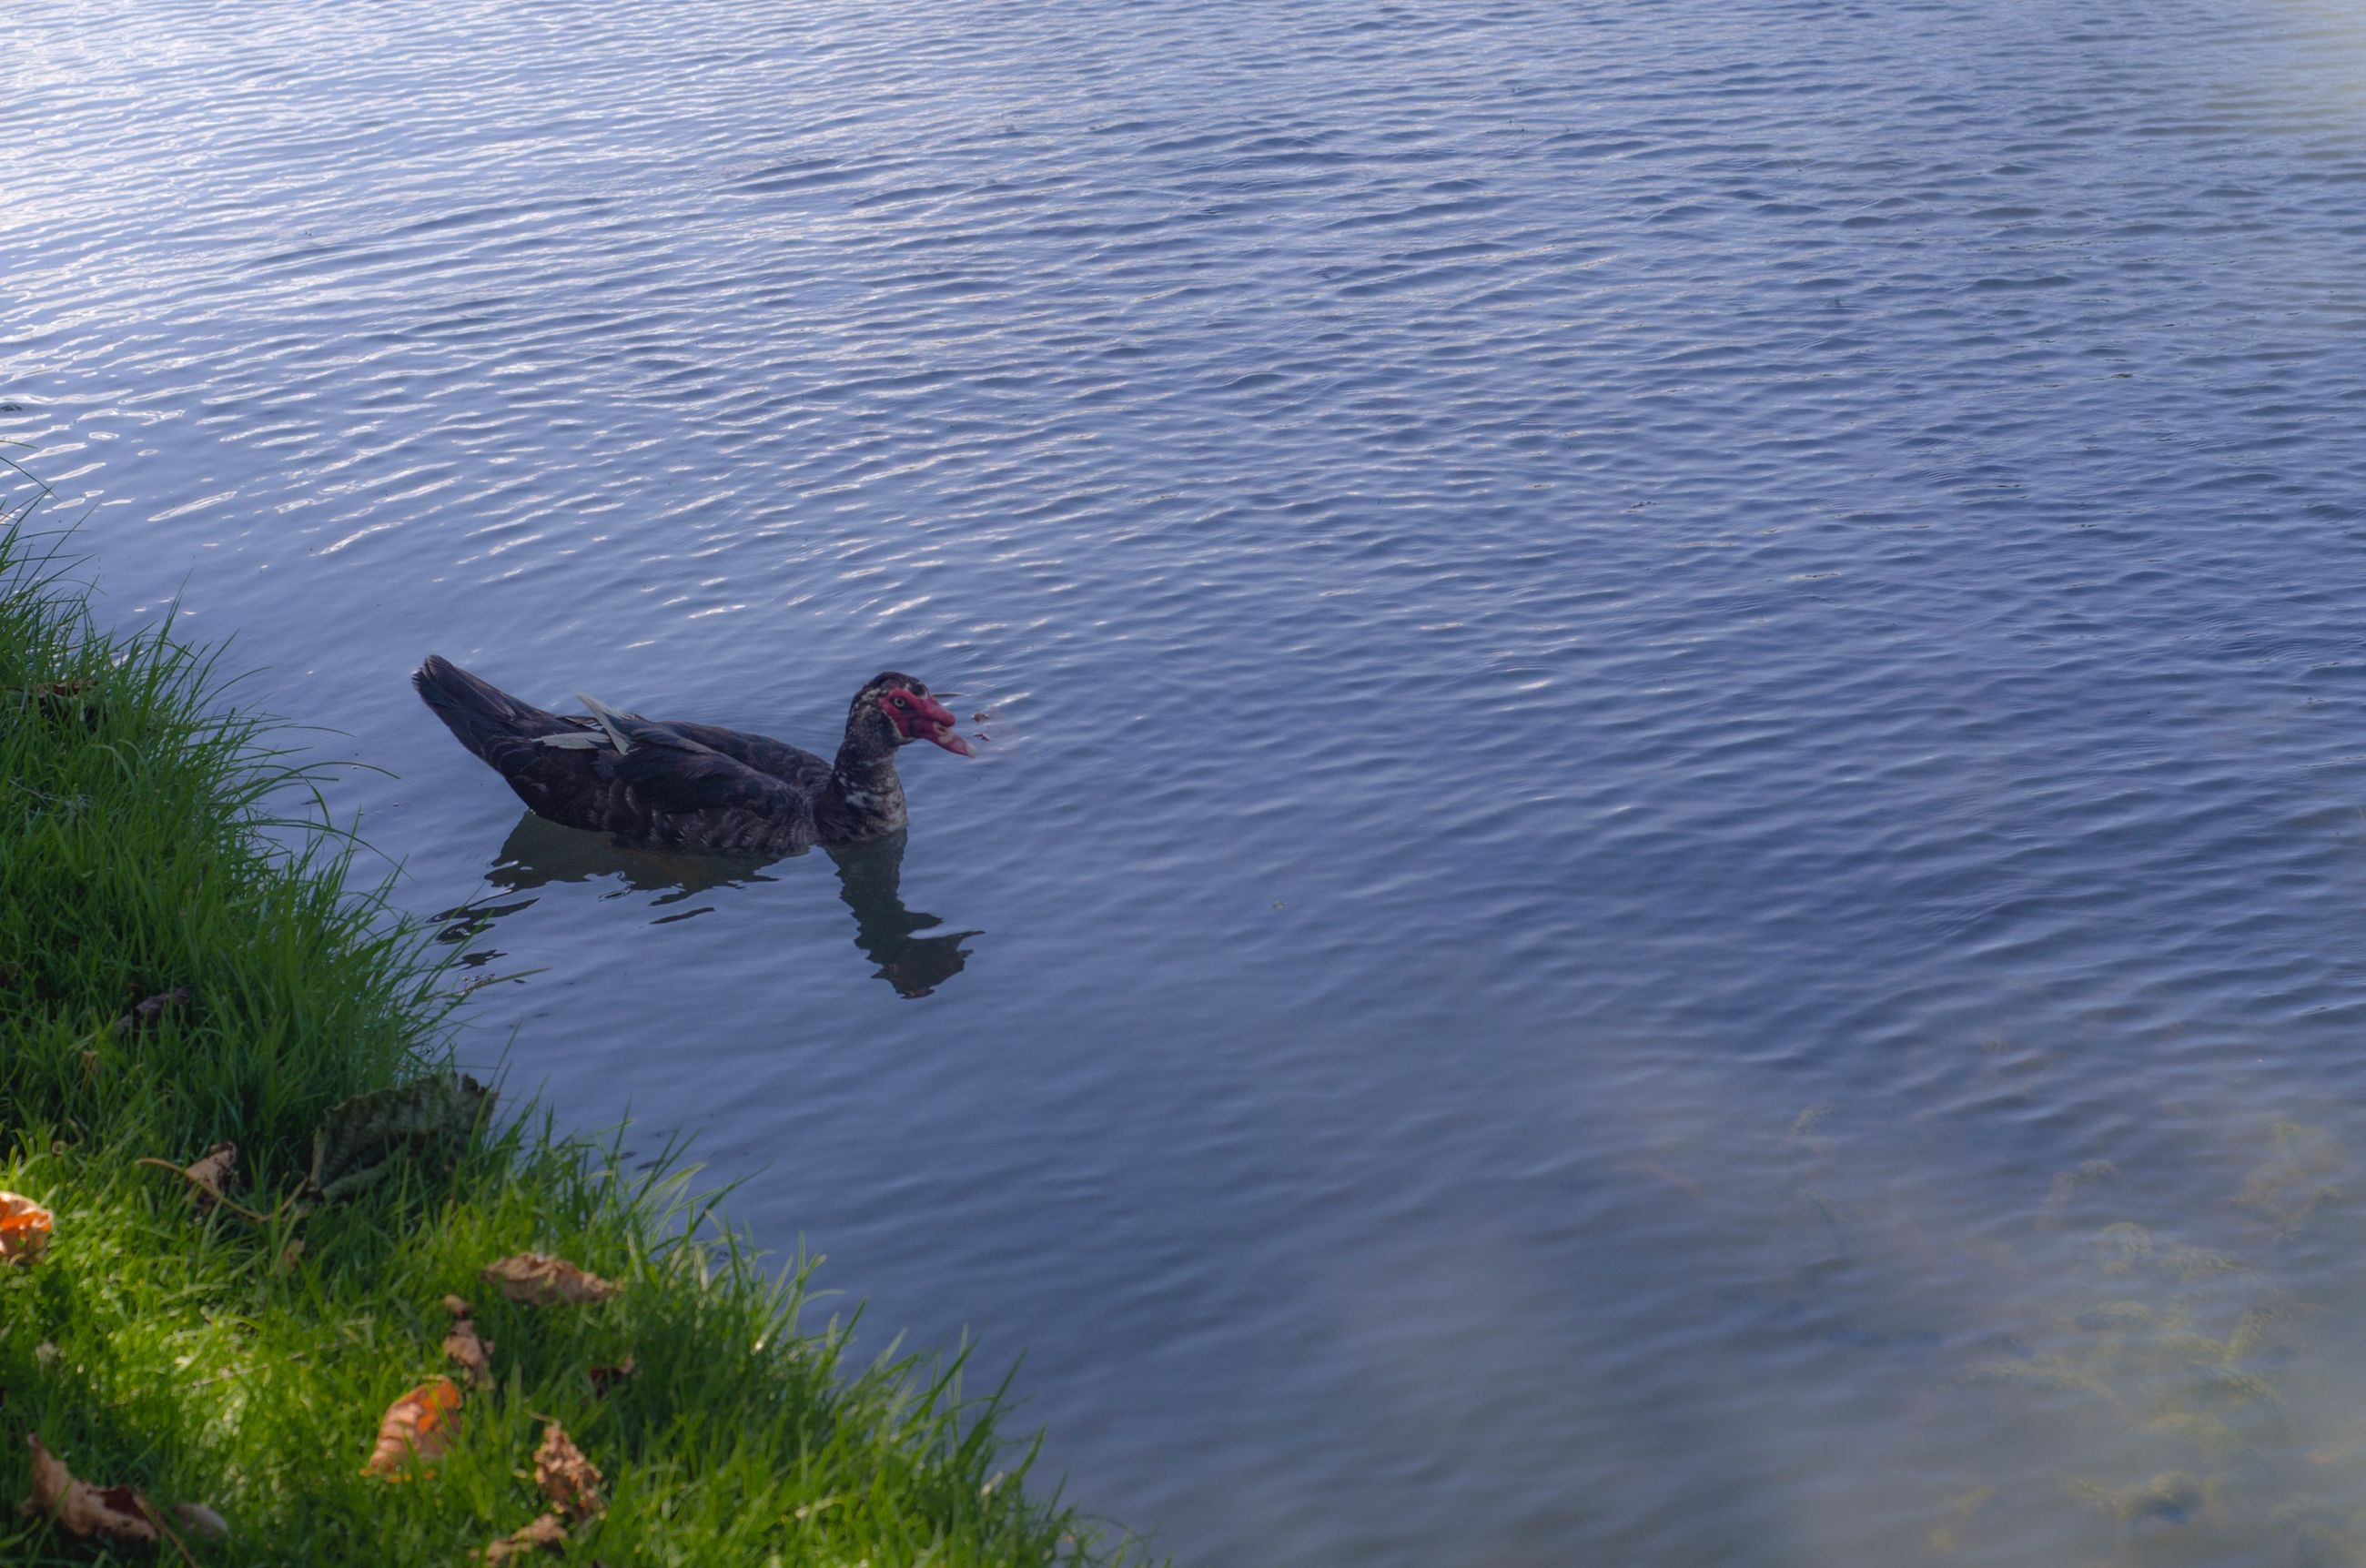 water, lake, bird, animal themes, high angle view, swimming, animals in the wild, nature, rippled, duck, full length, waterfront, reflection, wildlife, one animal, tranquility, outdoors, beauty in nature